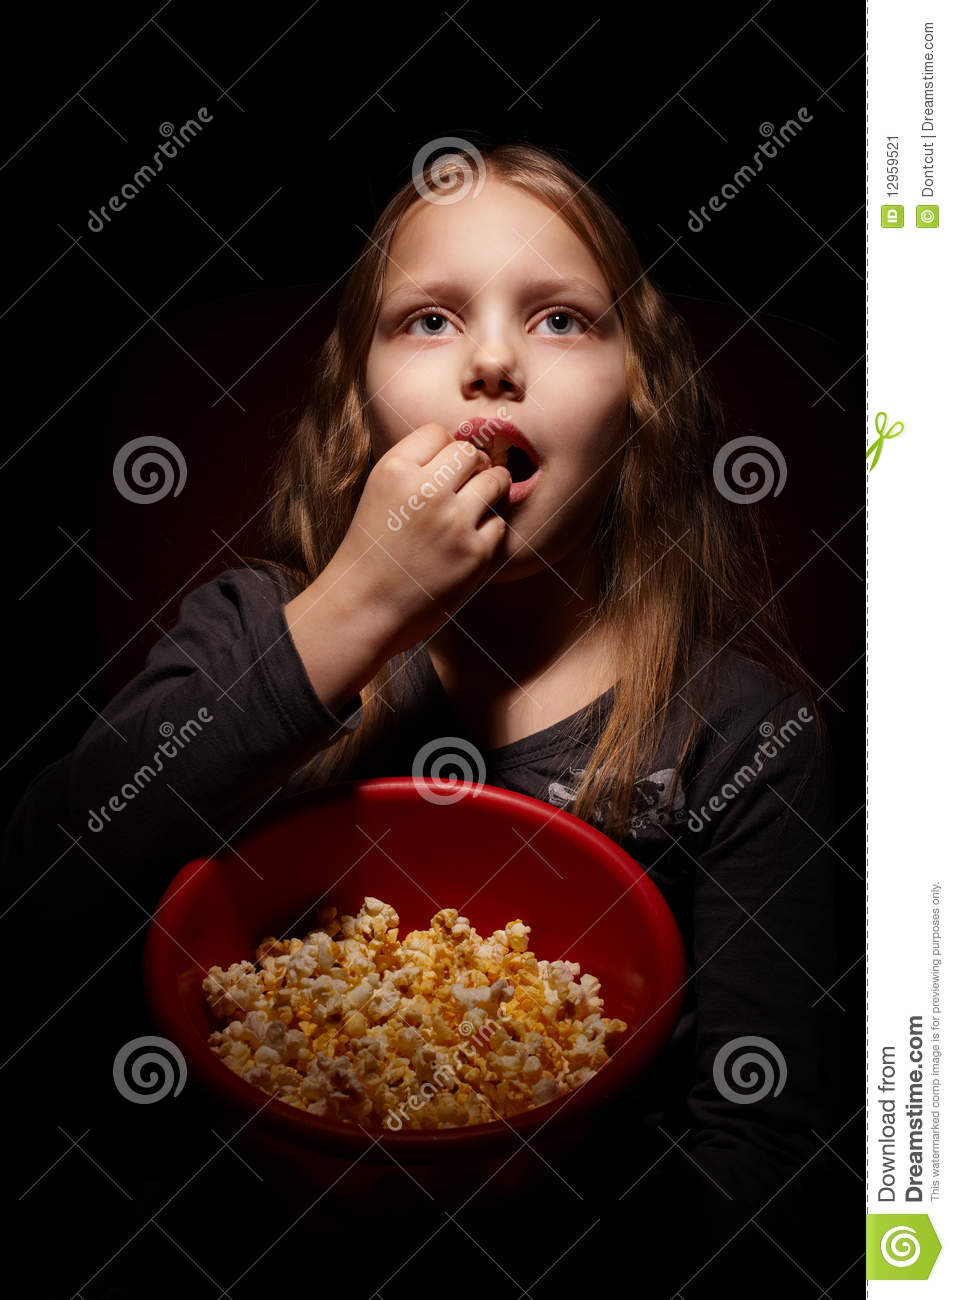 little girl with popcorn stock image image of hair food 12959521